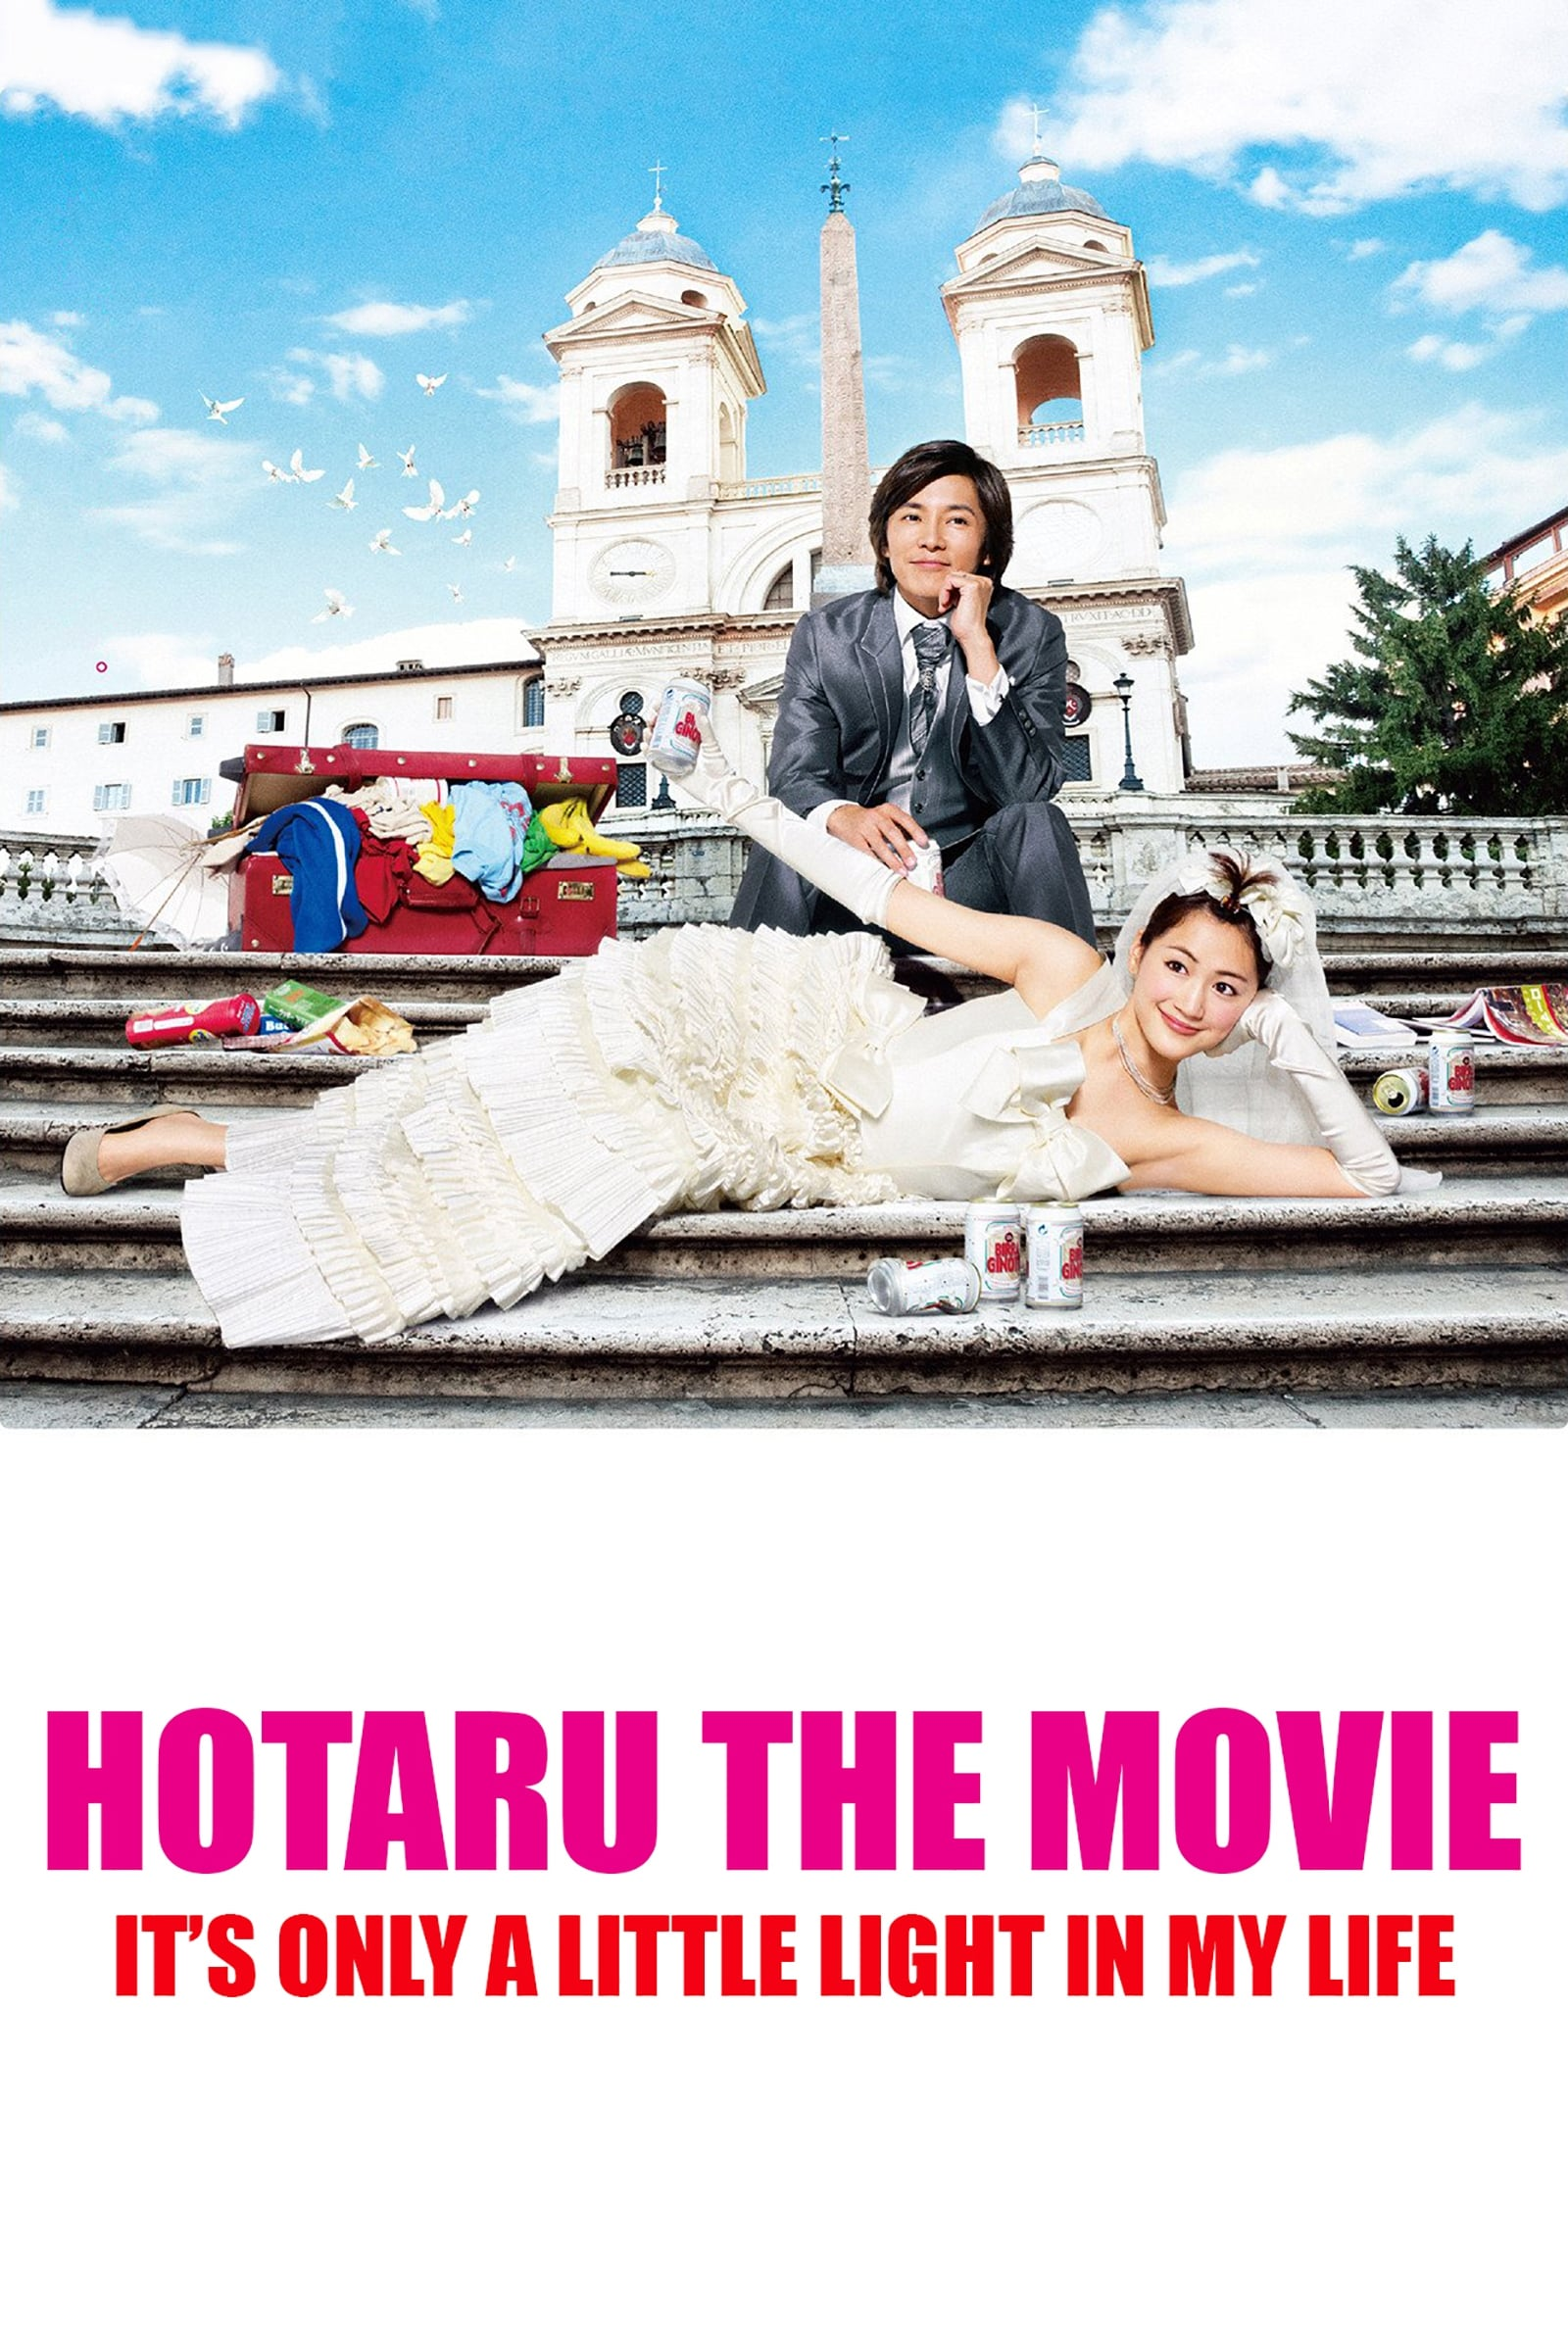 Hotaru the Movie: It's Only a Little Light in My Life (2012)